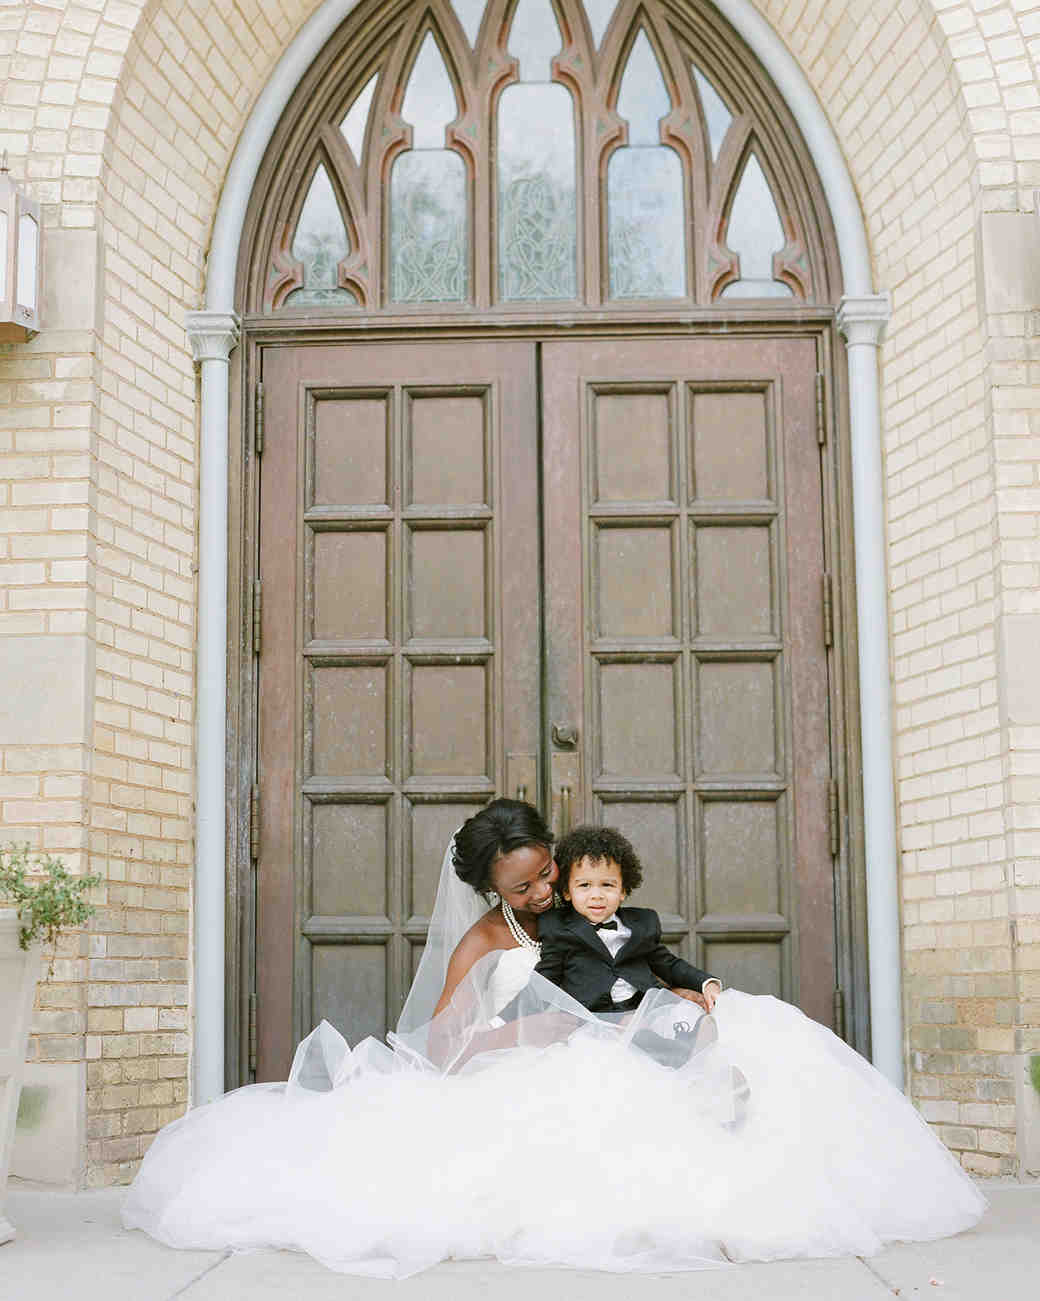 anwuli patrick wedding ring bearer and bride